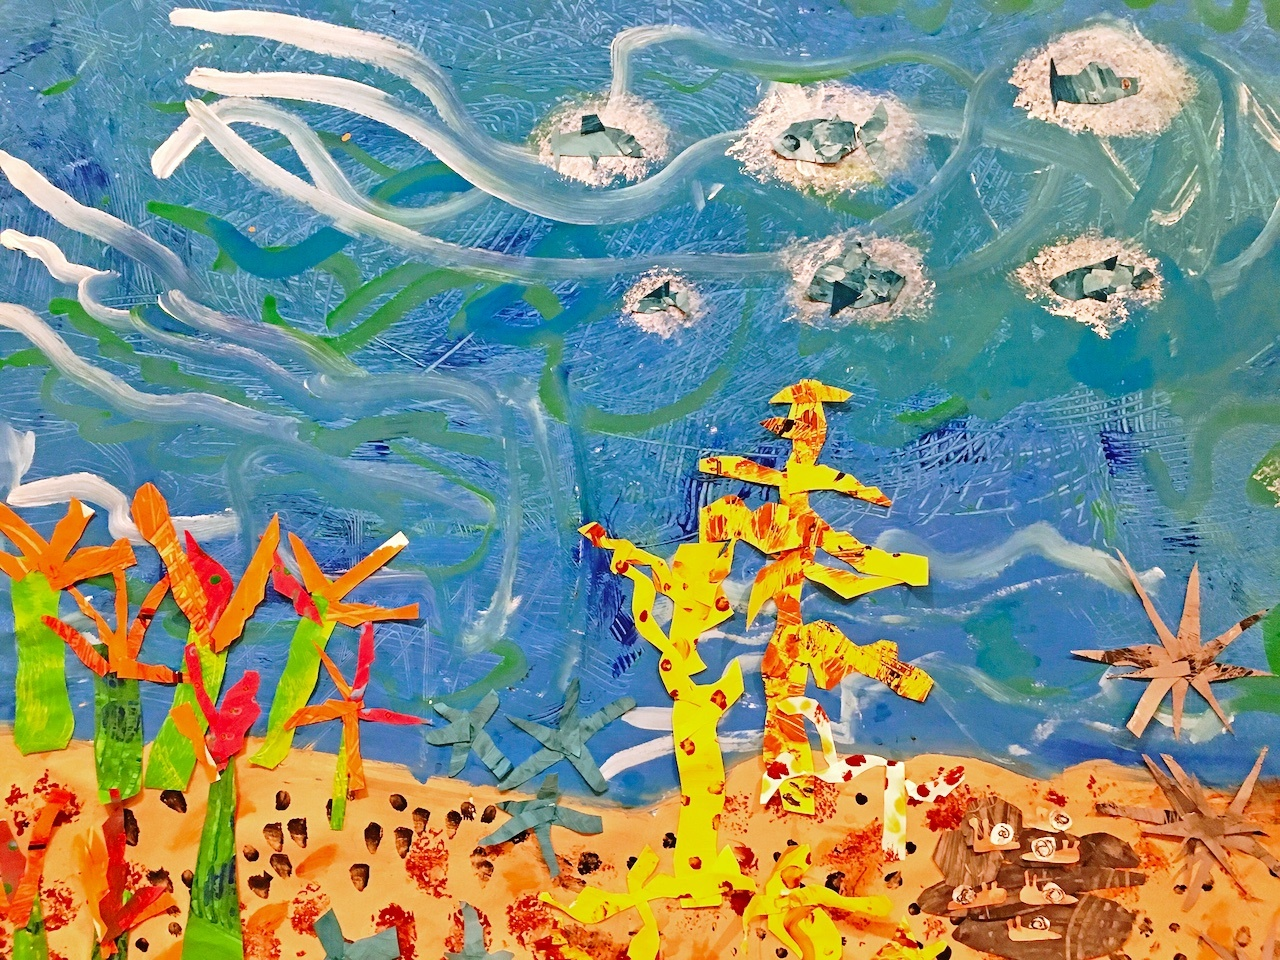 A work created by Amagansett School kindergartners and first graders for the 2018 Guild Hall Student Art Festival.